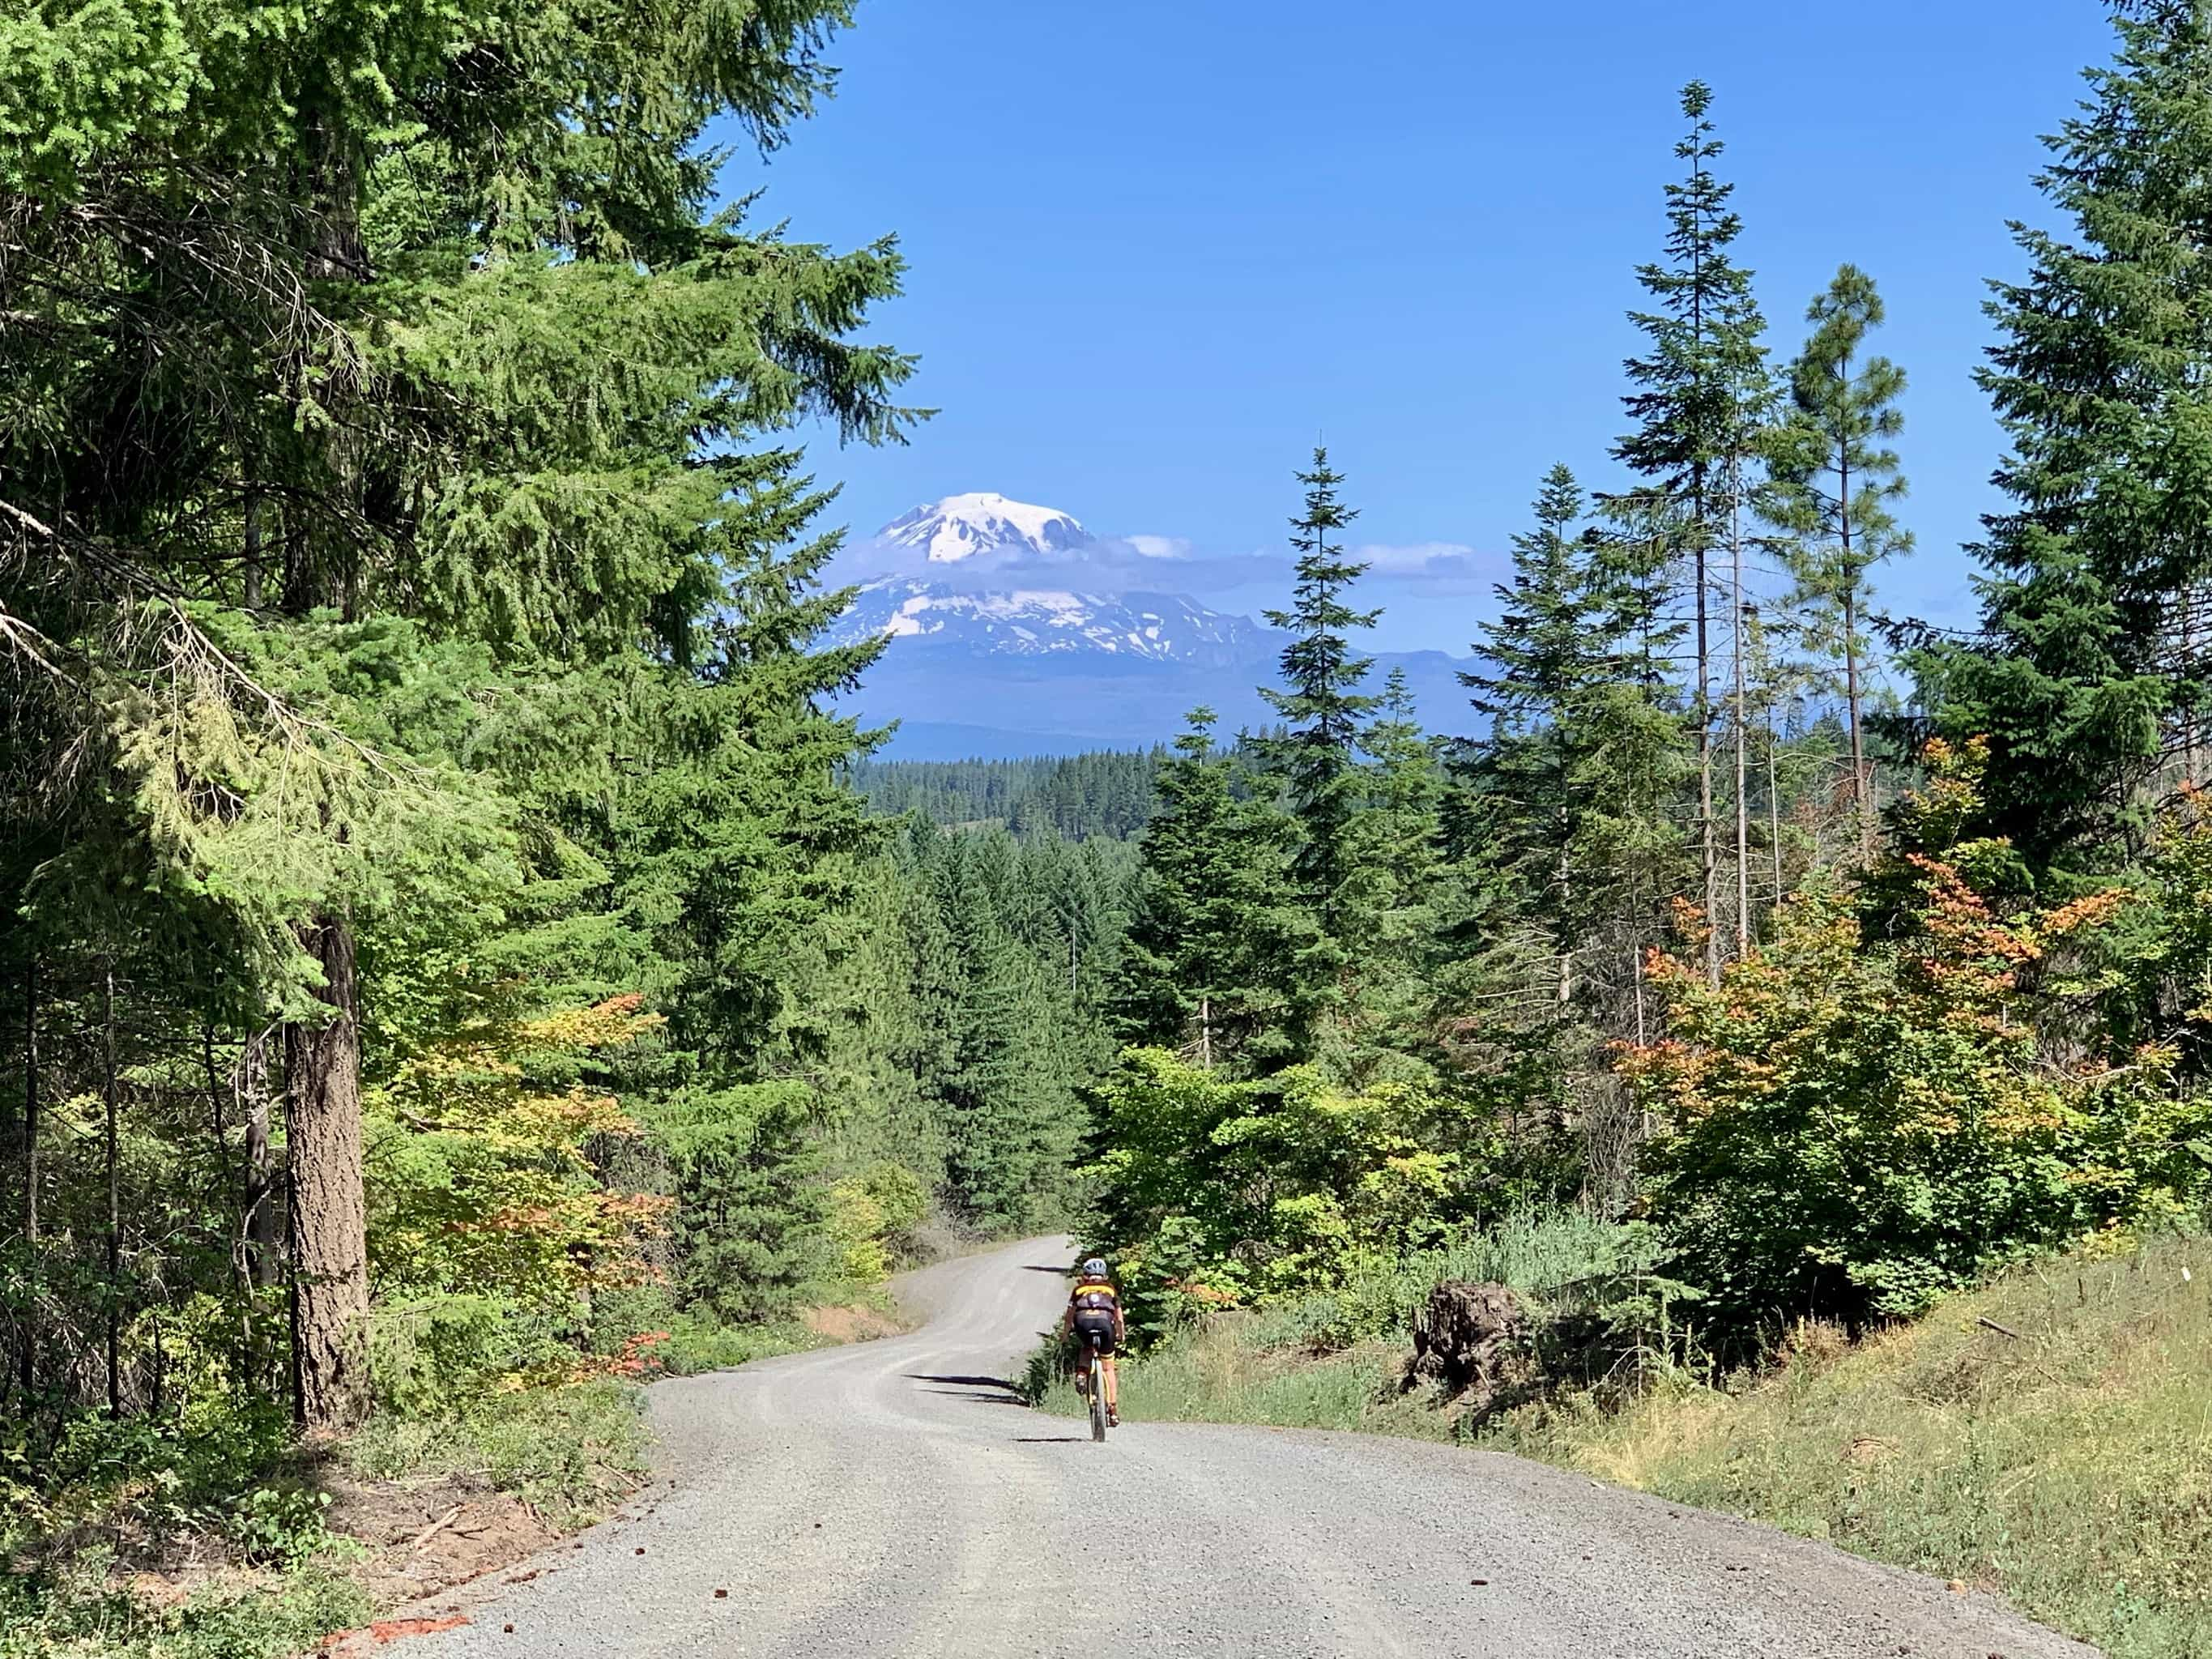 Cyclist on gravel road north of Lyle, Washington with view of Mt Adams.